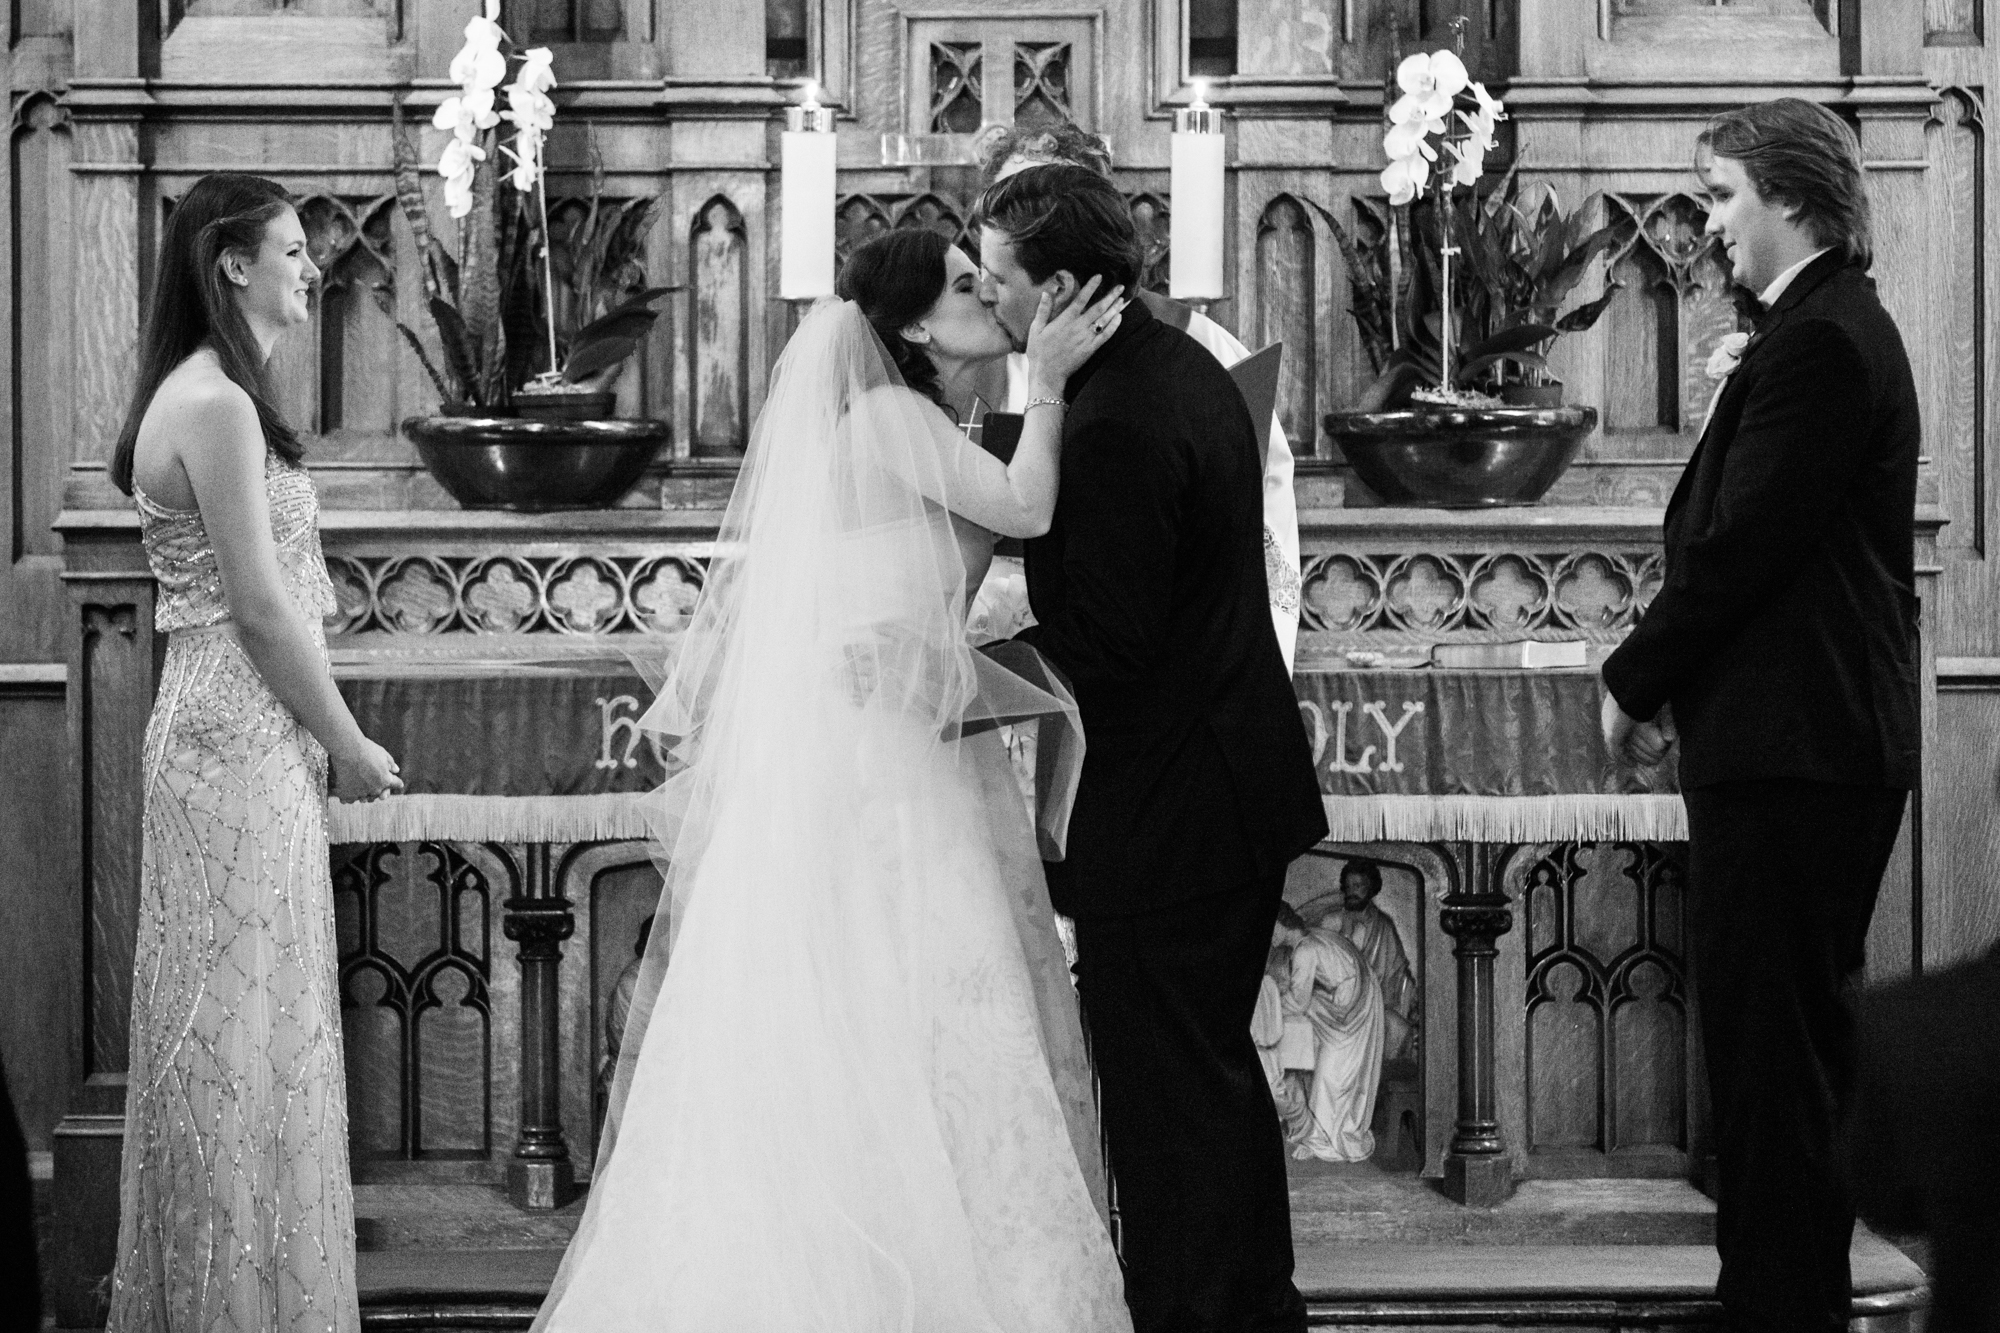 Wedding ceremony at St James Lutheran Church in Chicago, IL.